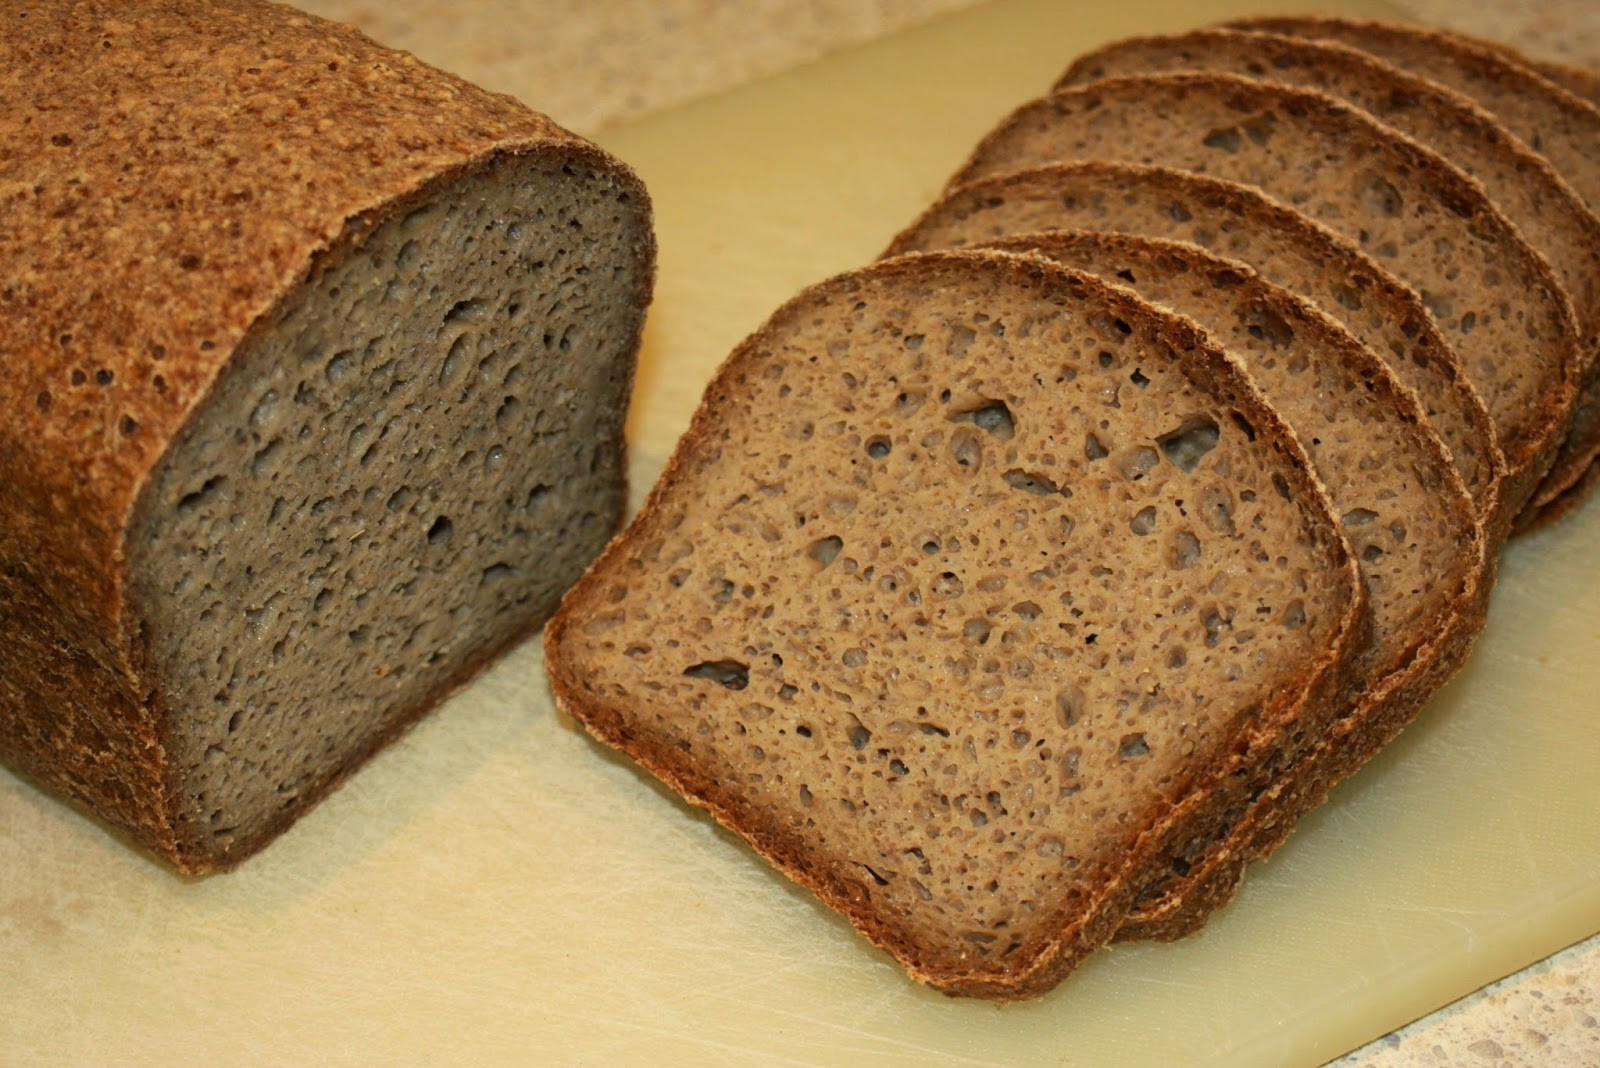 Gluten Free Bread Recipe  The World of Gluten Free Bread My Gluten Free Bread Recipe